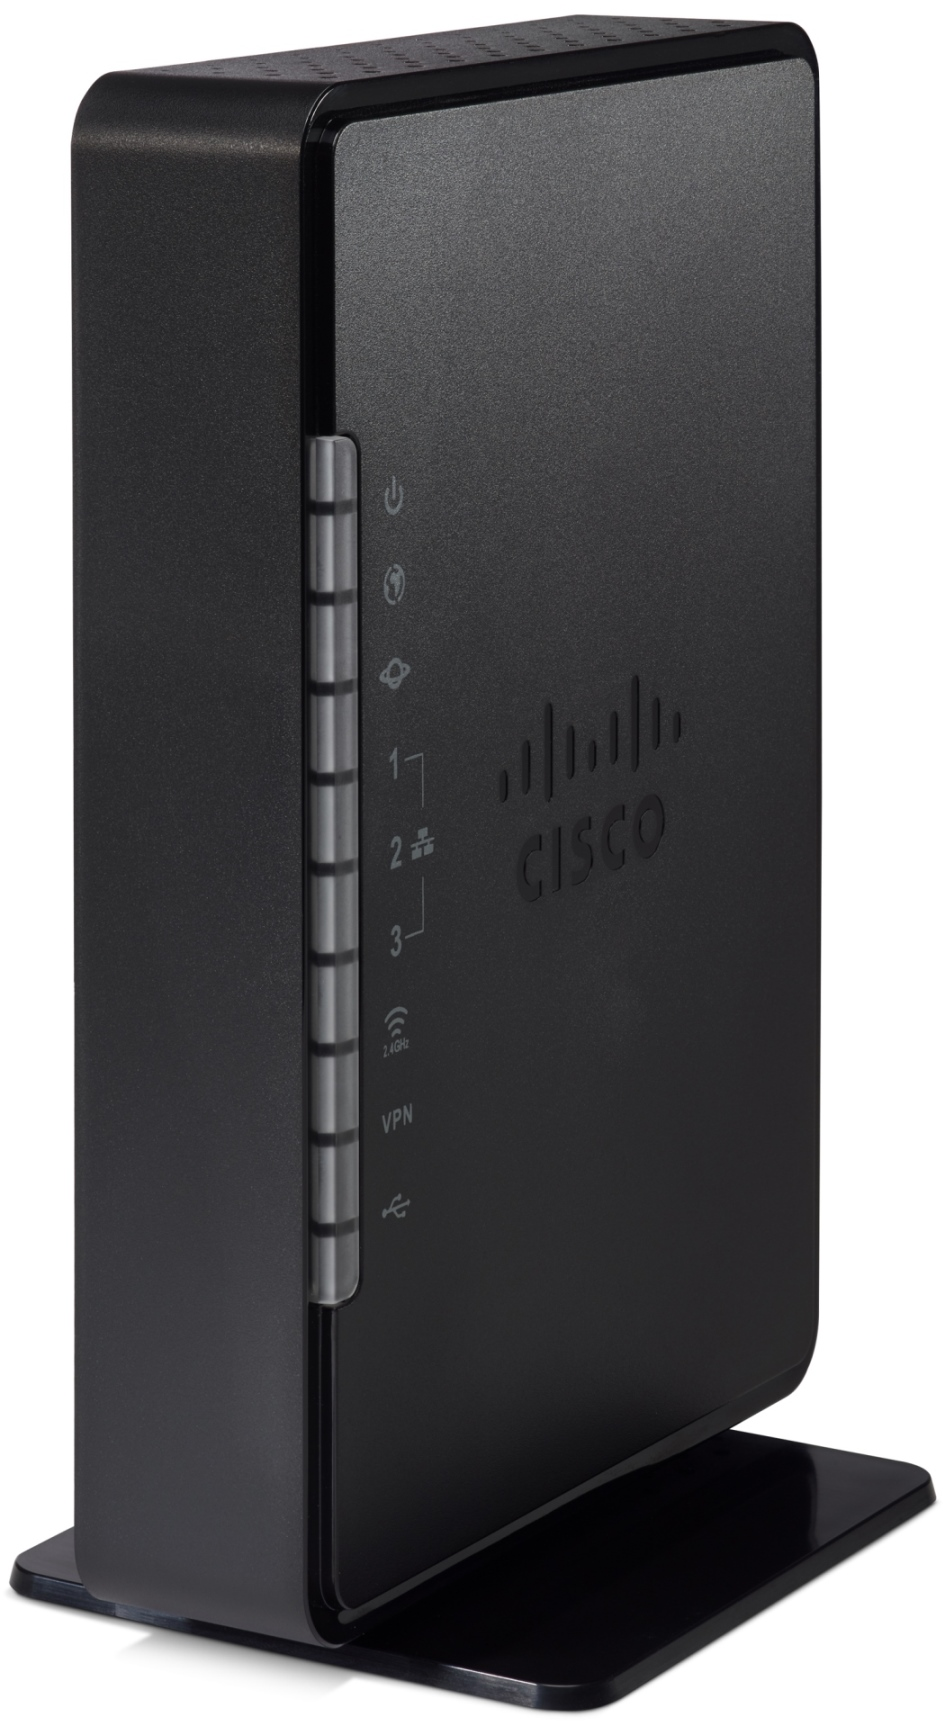 Cisco RV132W Wireless-N VPN Router